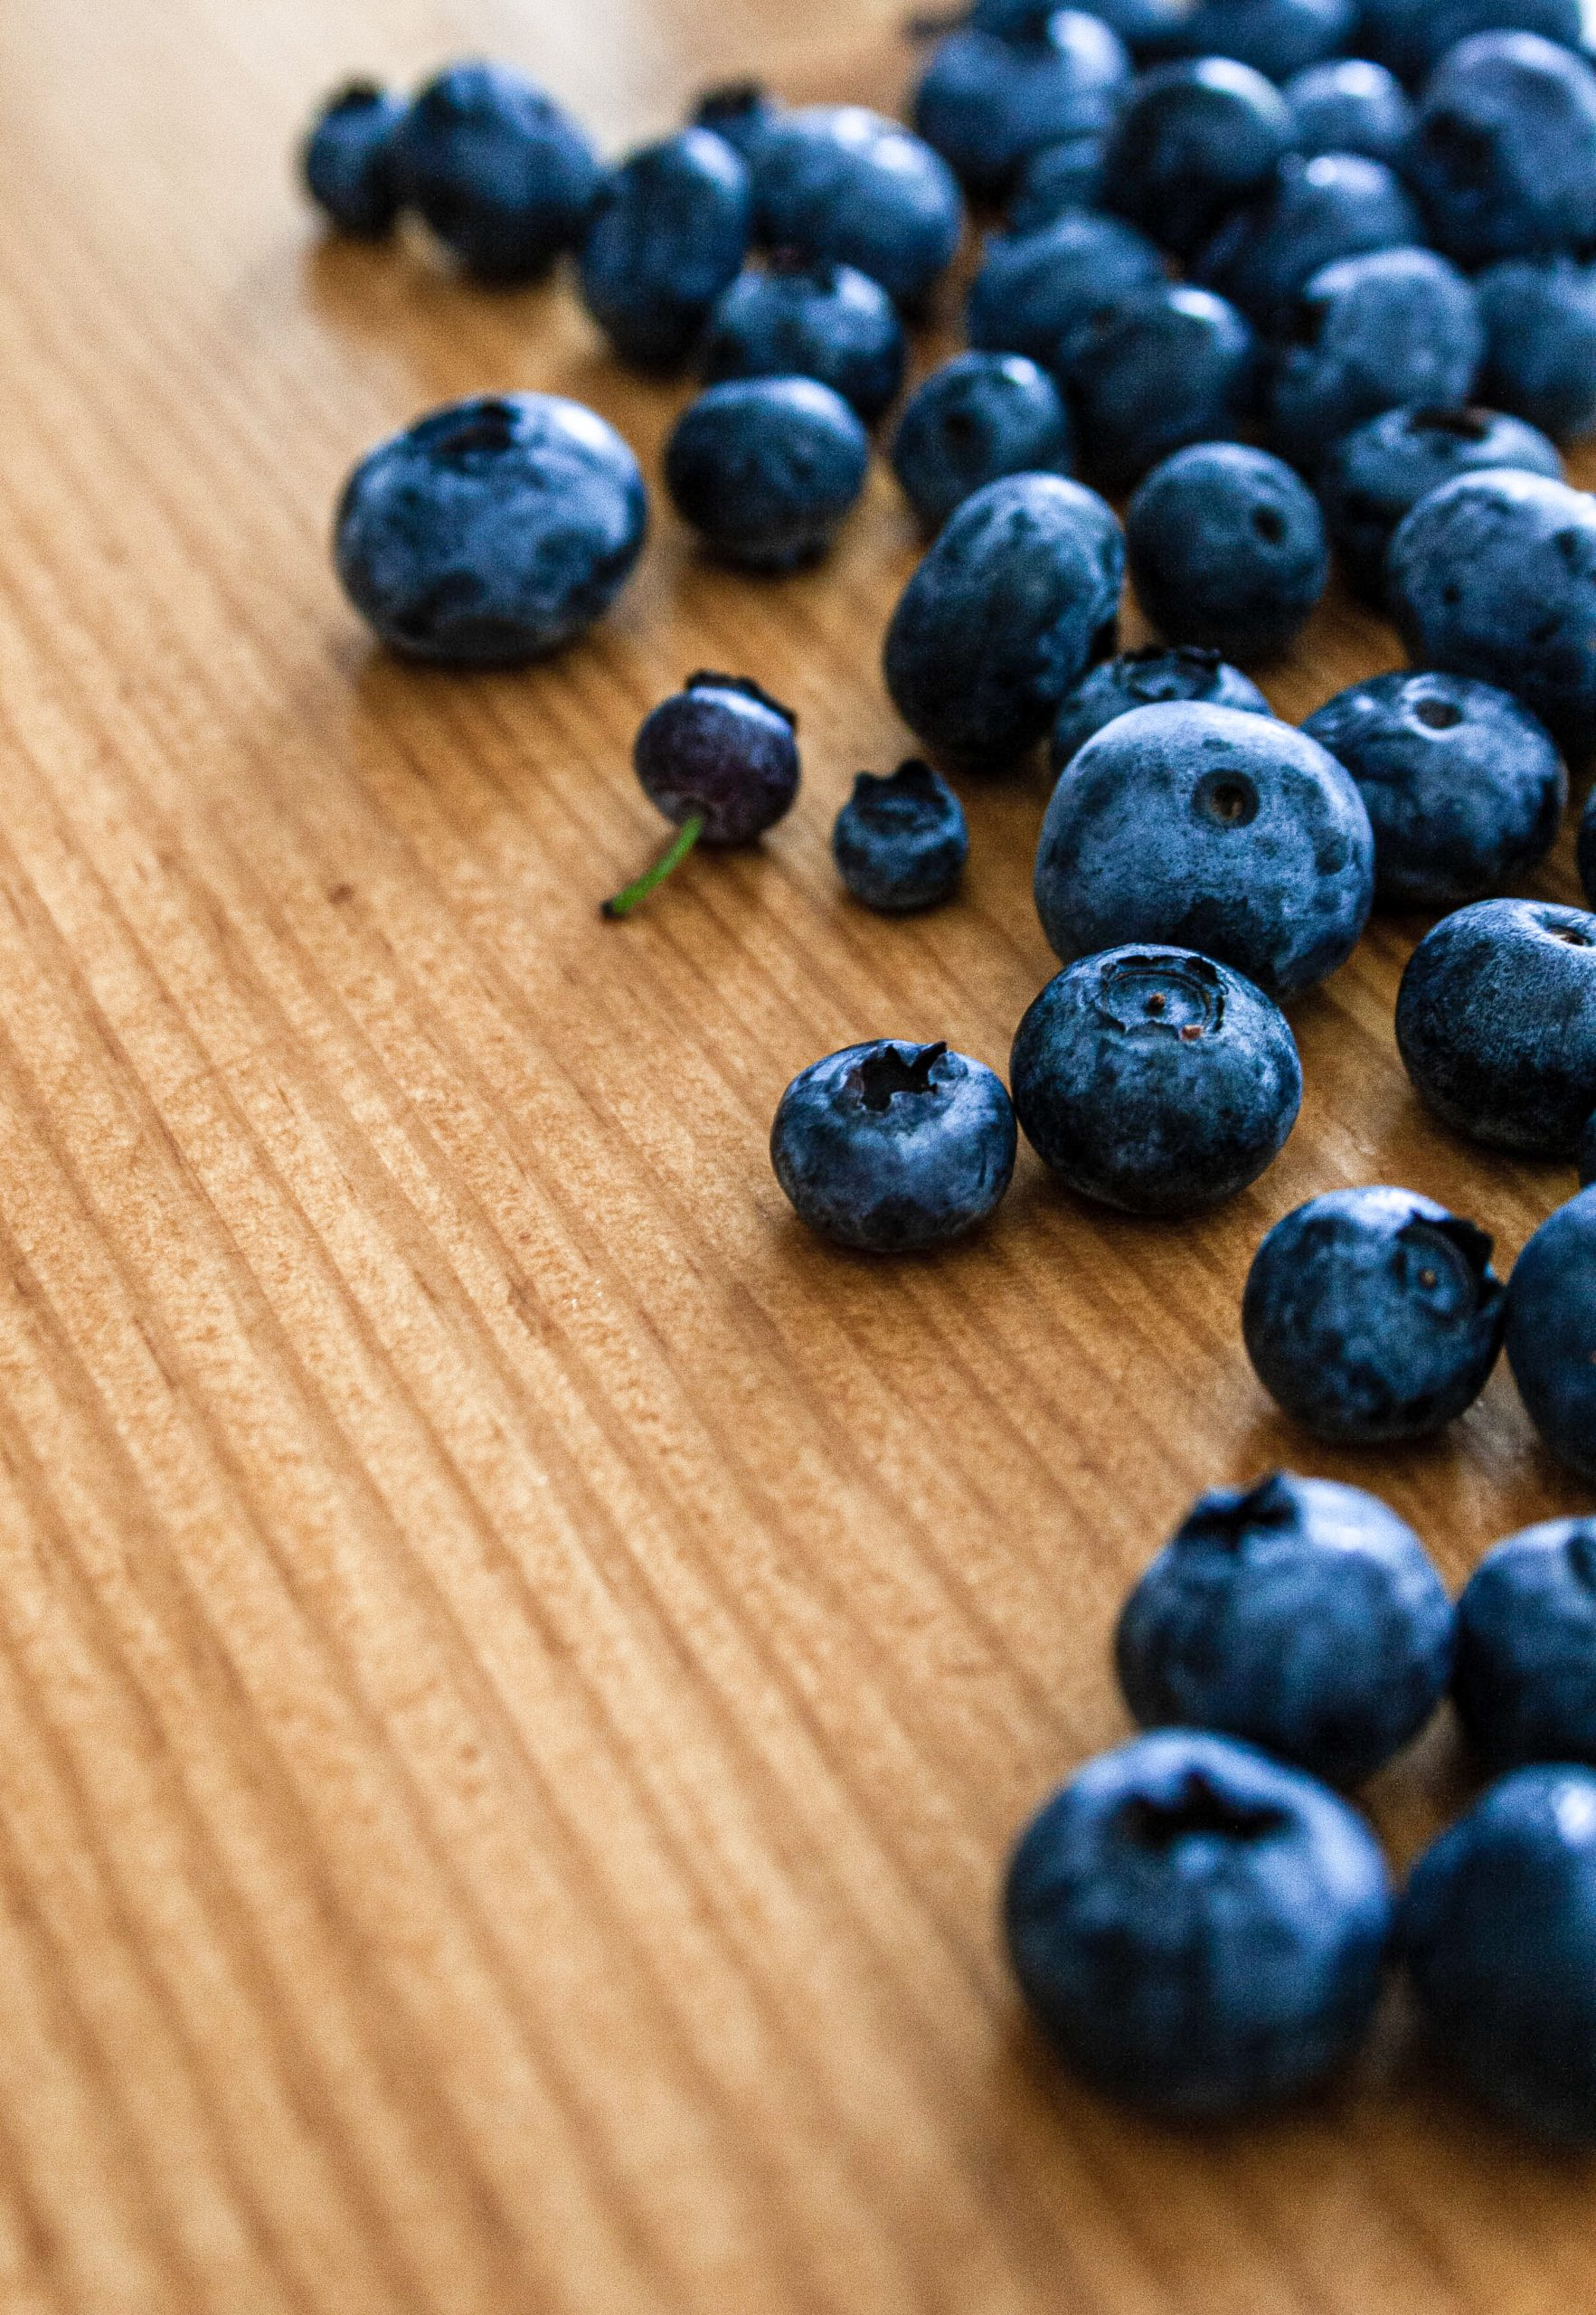 Food photography of blueberries